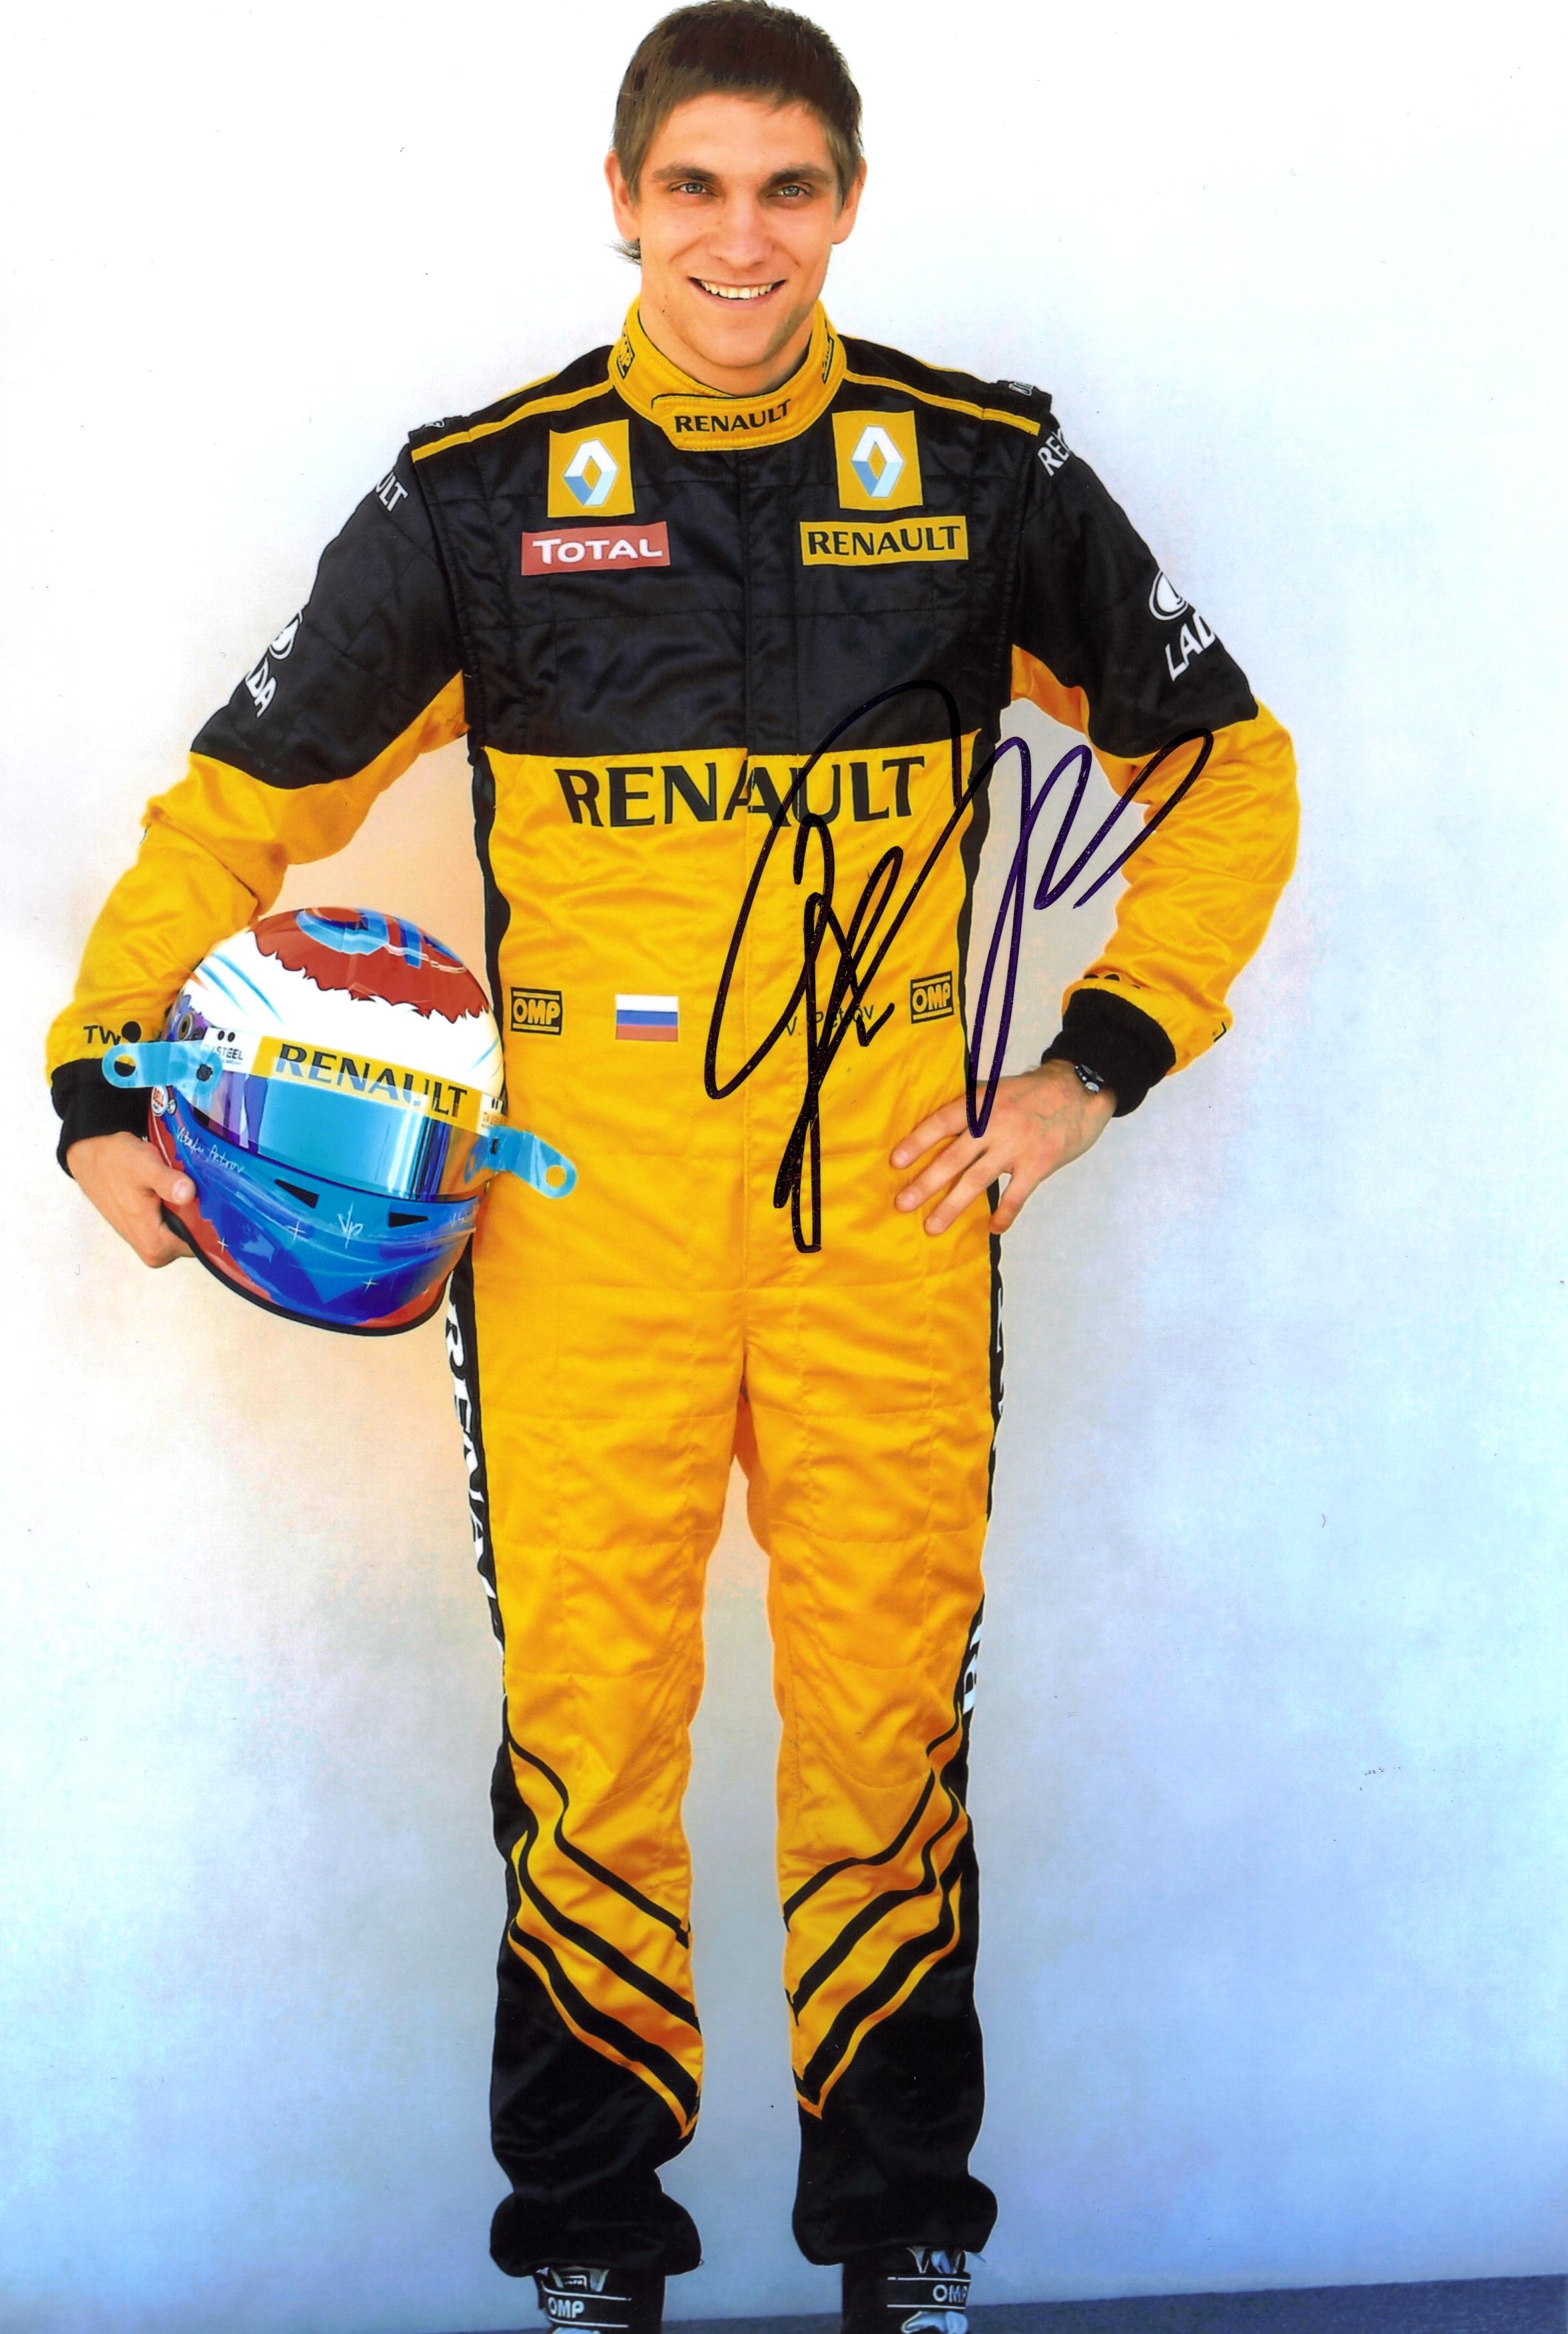 VITALY PETROV SIGNED  DRIVER PICTURE